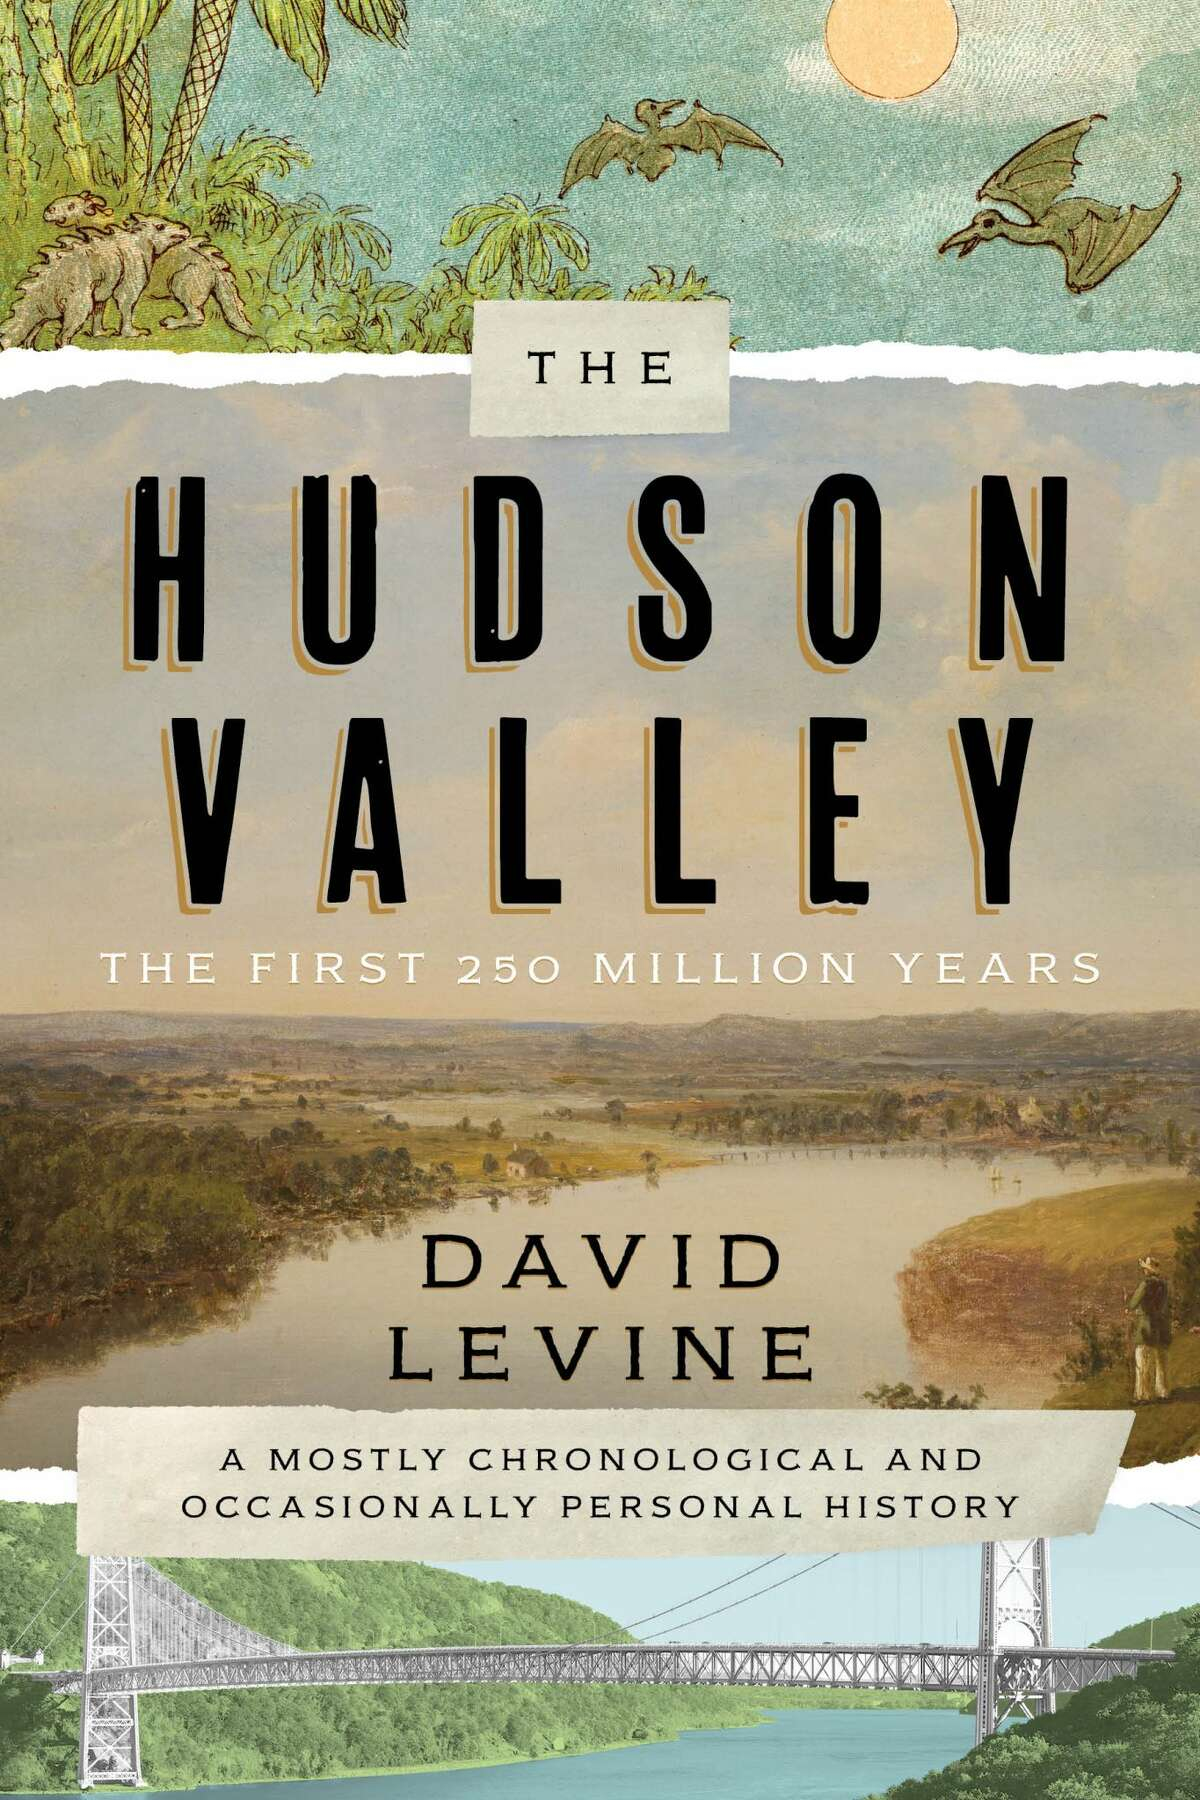 The Hudson Valley: The First 250 Million Years